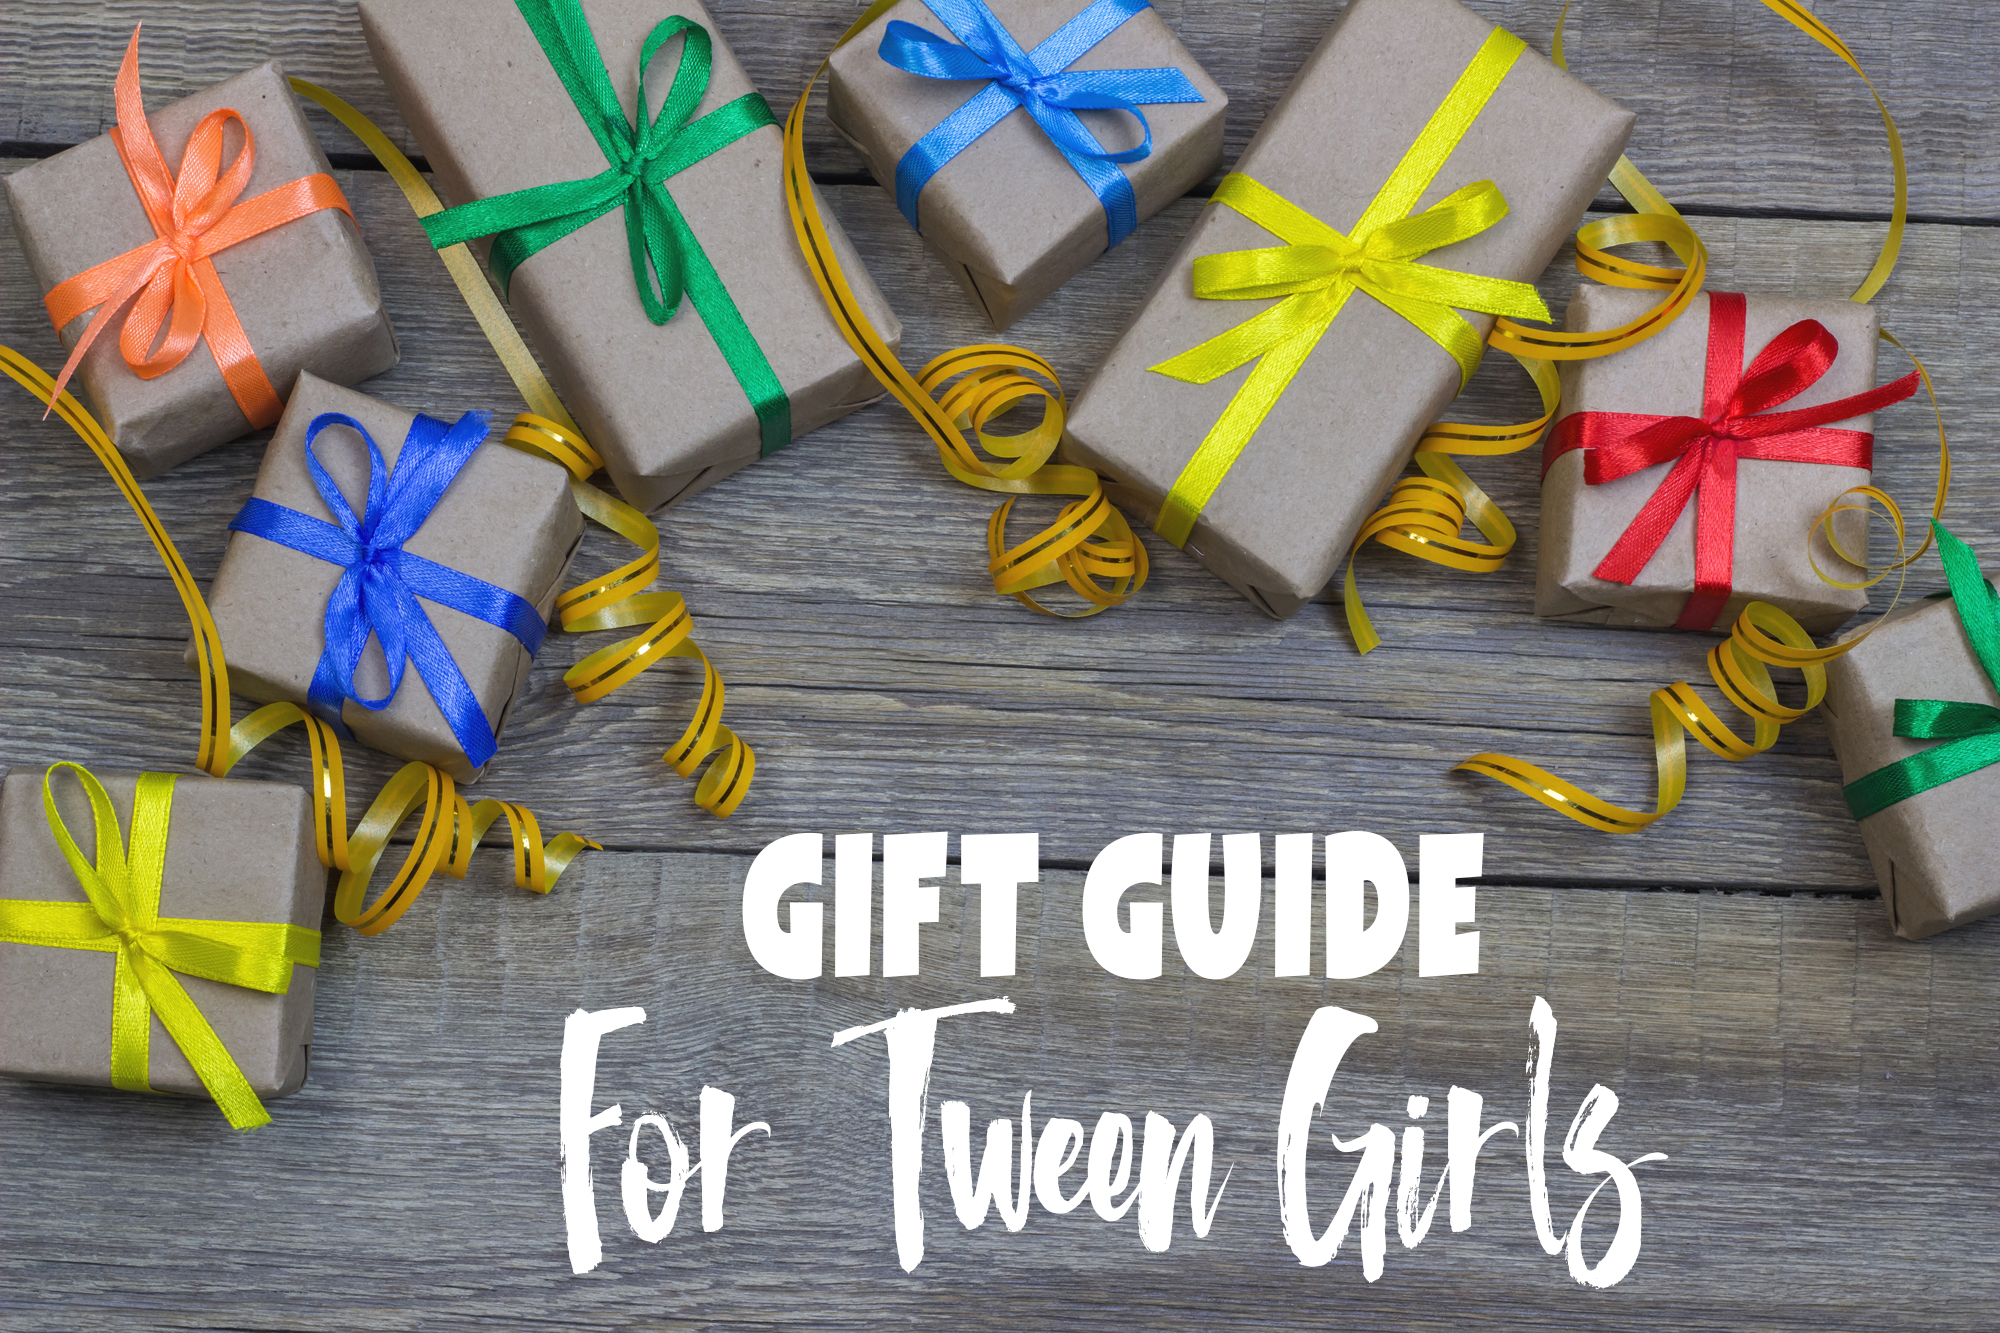 Christmas Gifts For Tweens 2018.Gift Ideas For Tween Girls They Will Love 2019 Gift Guide